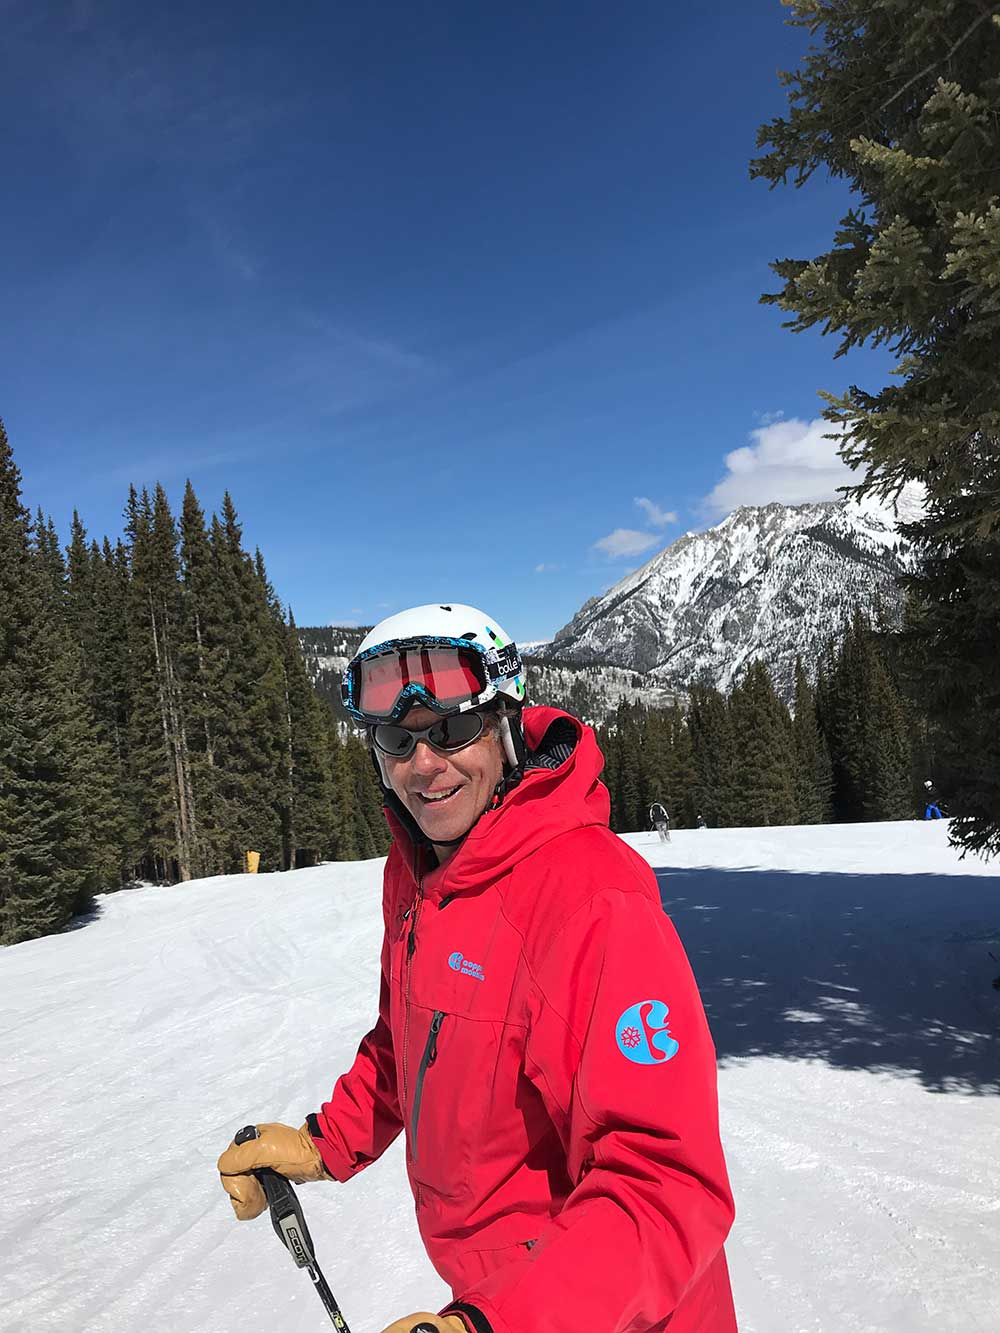 Instructor Dennis Meeker of Copper's Ski and Ride School